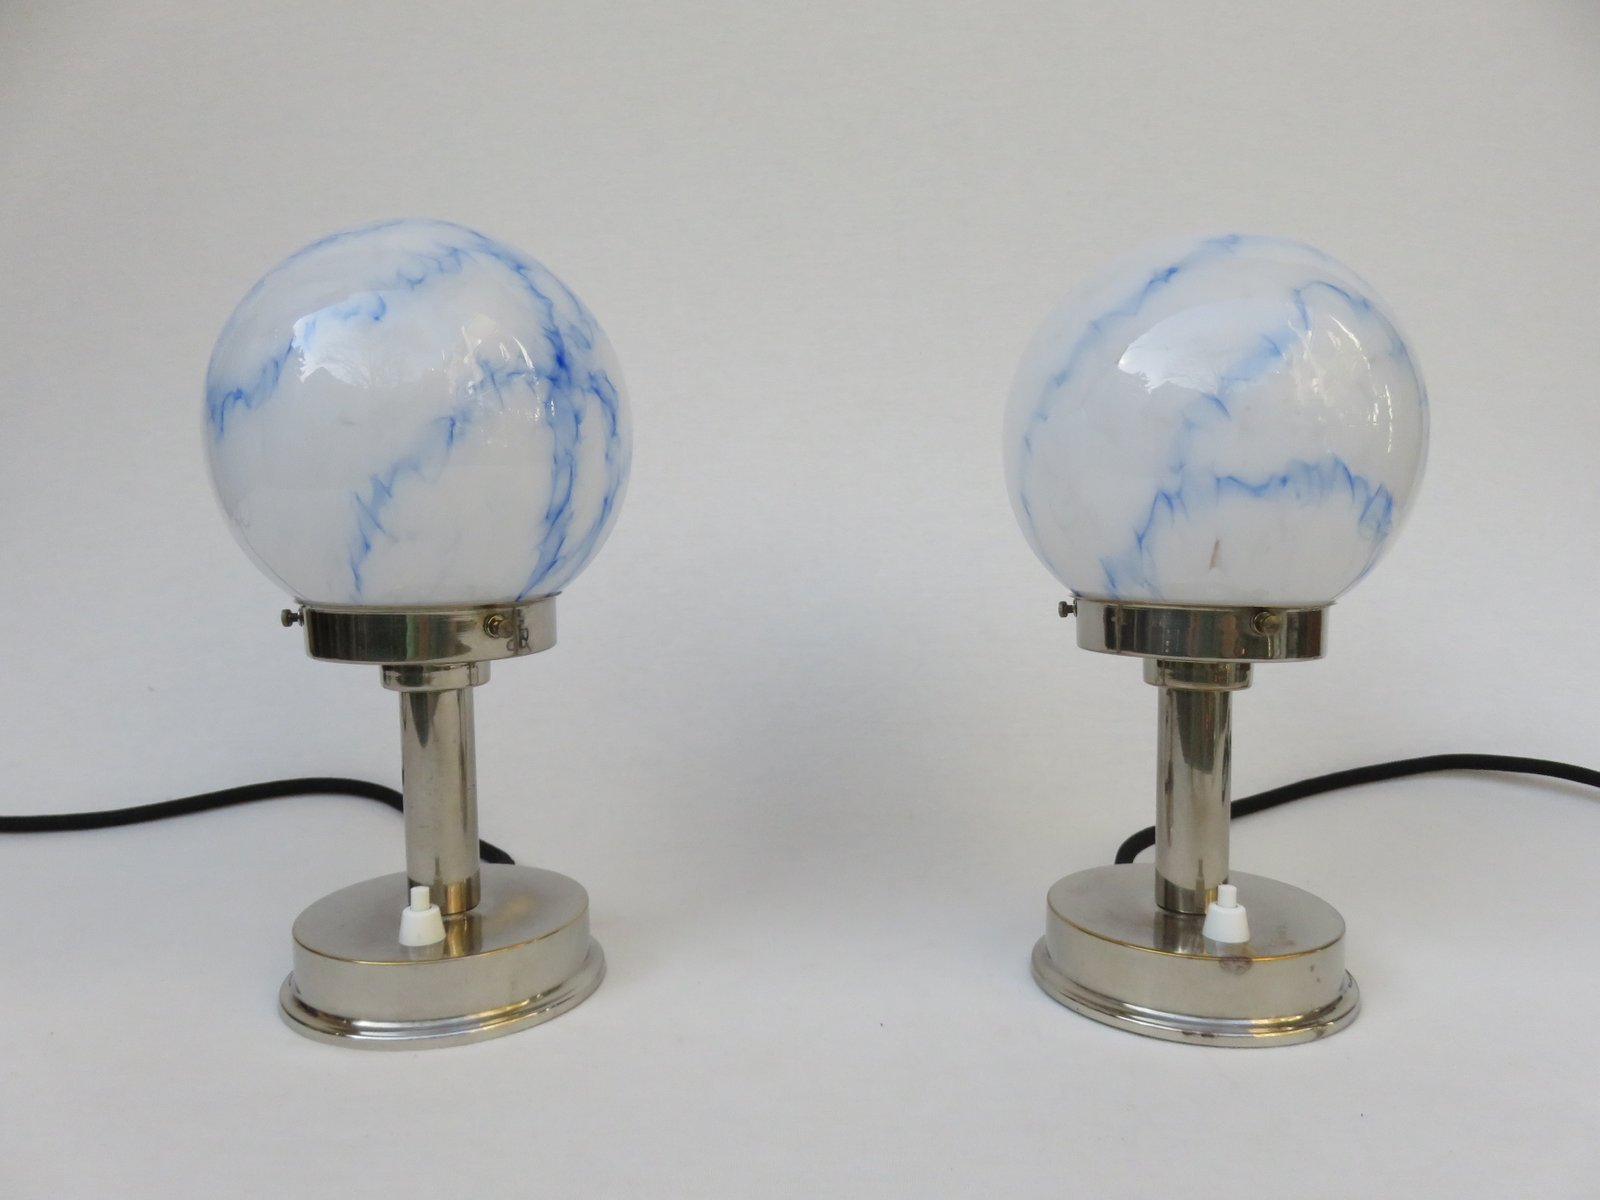 Vintage small art deco table lamps from fm set of 2 for sale at vintage small art deco table lamps from fm set of 2 geotapseo Images